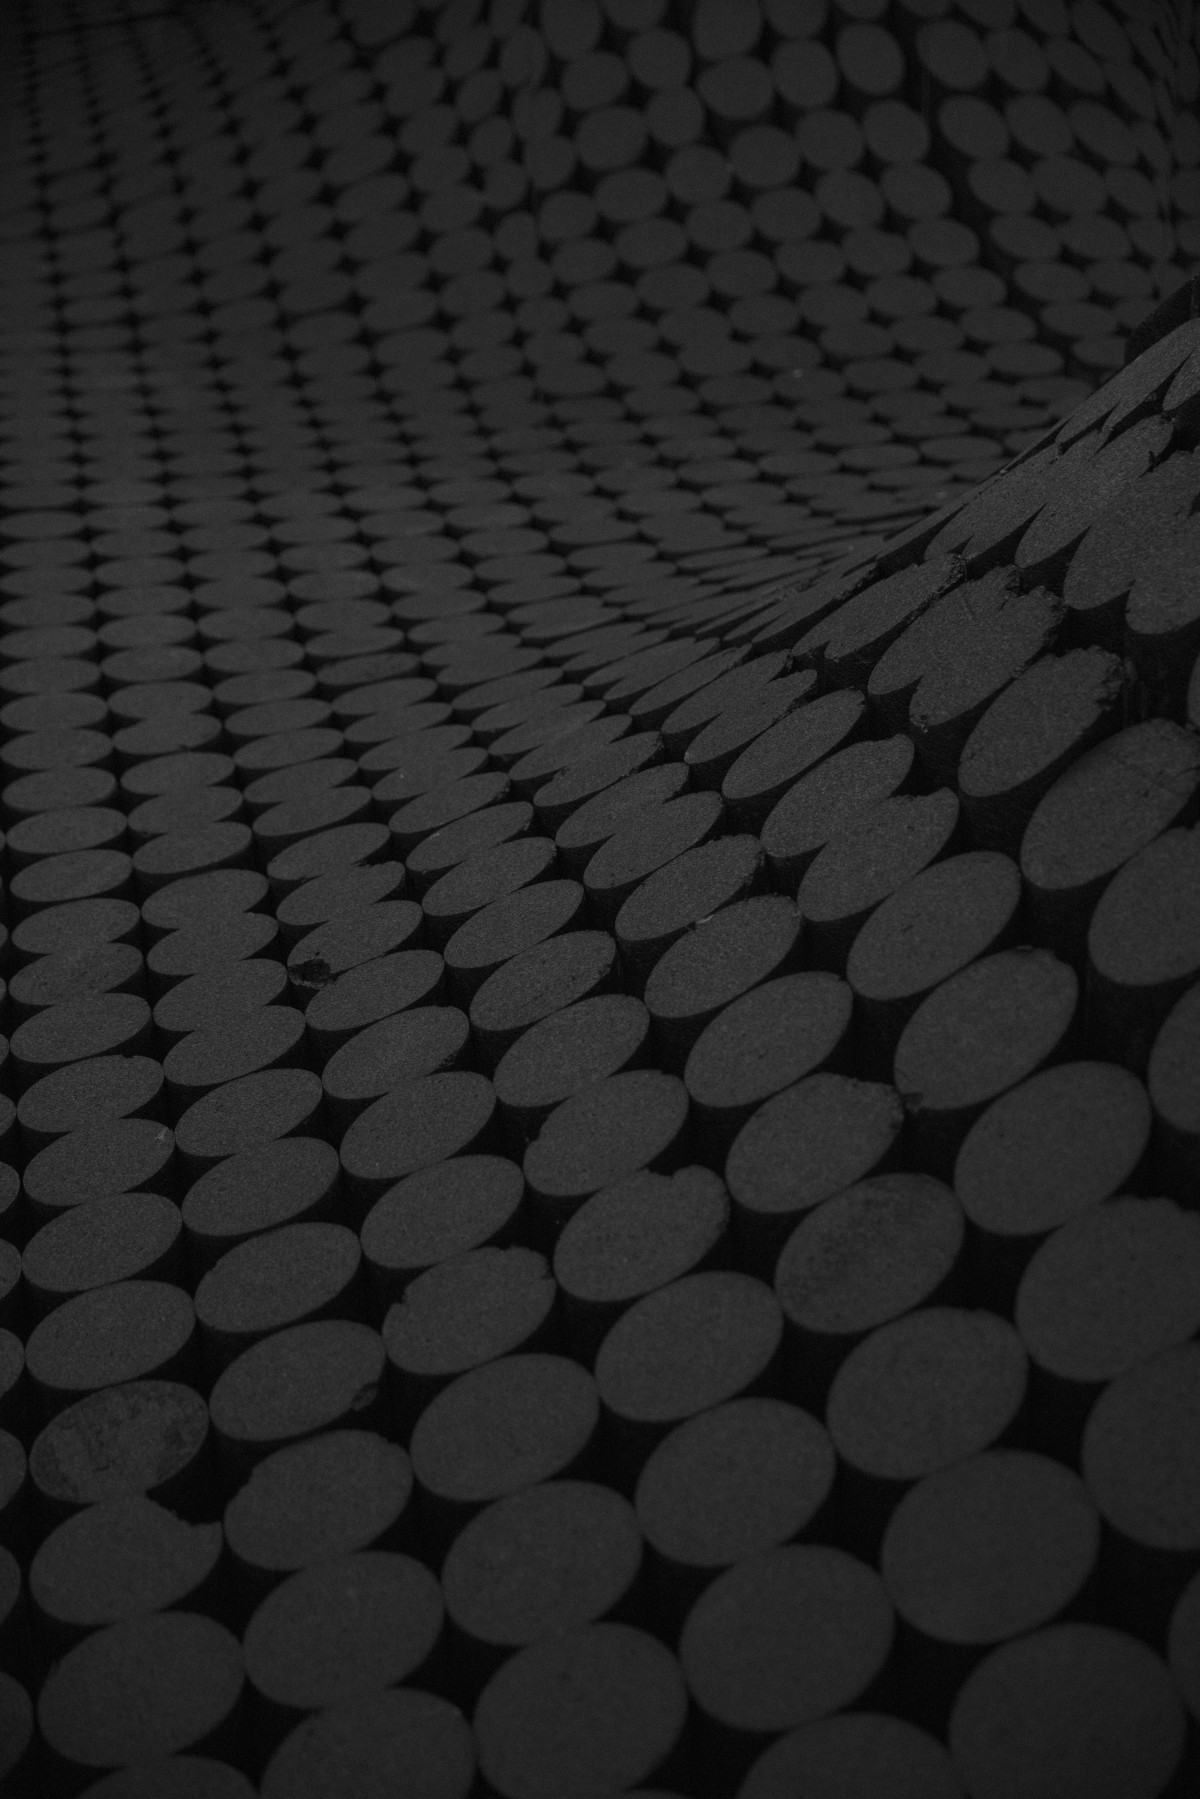 Ios 6 Wallpaper Hd Free Images Black And White Leather Texture Floor